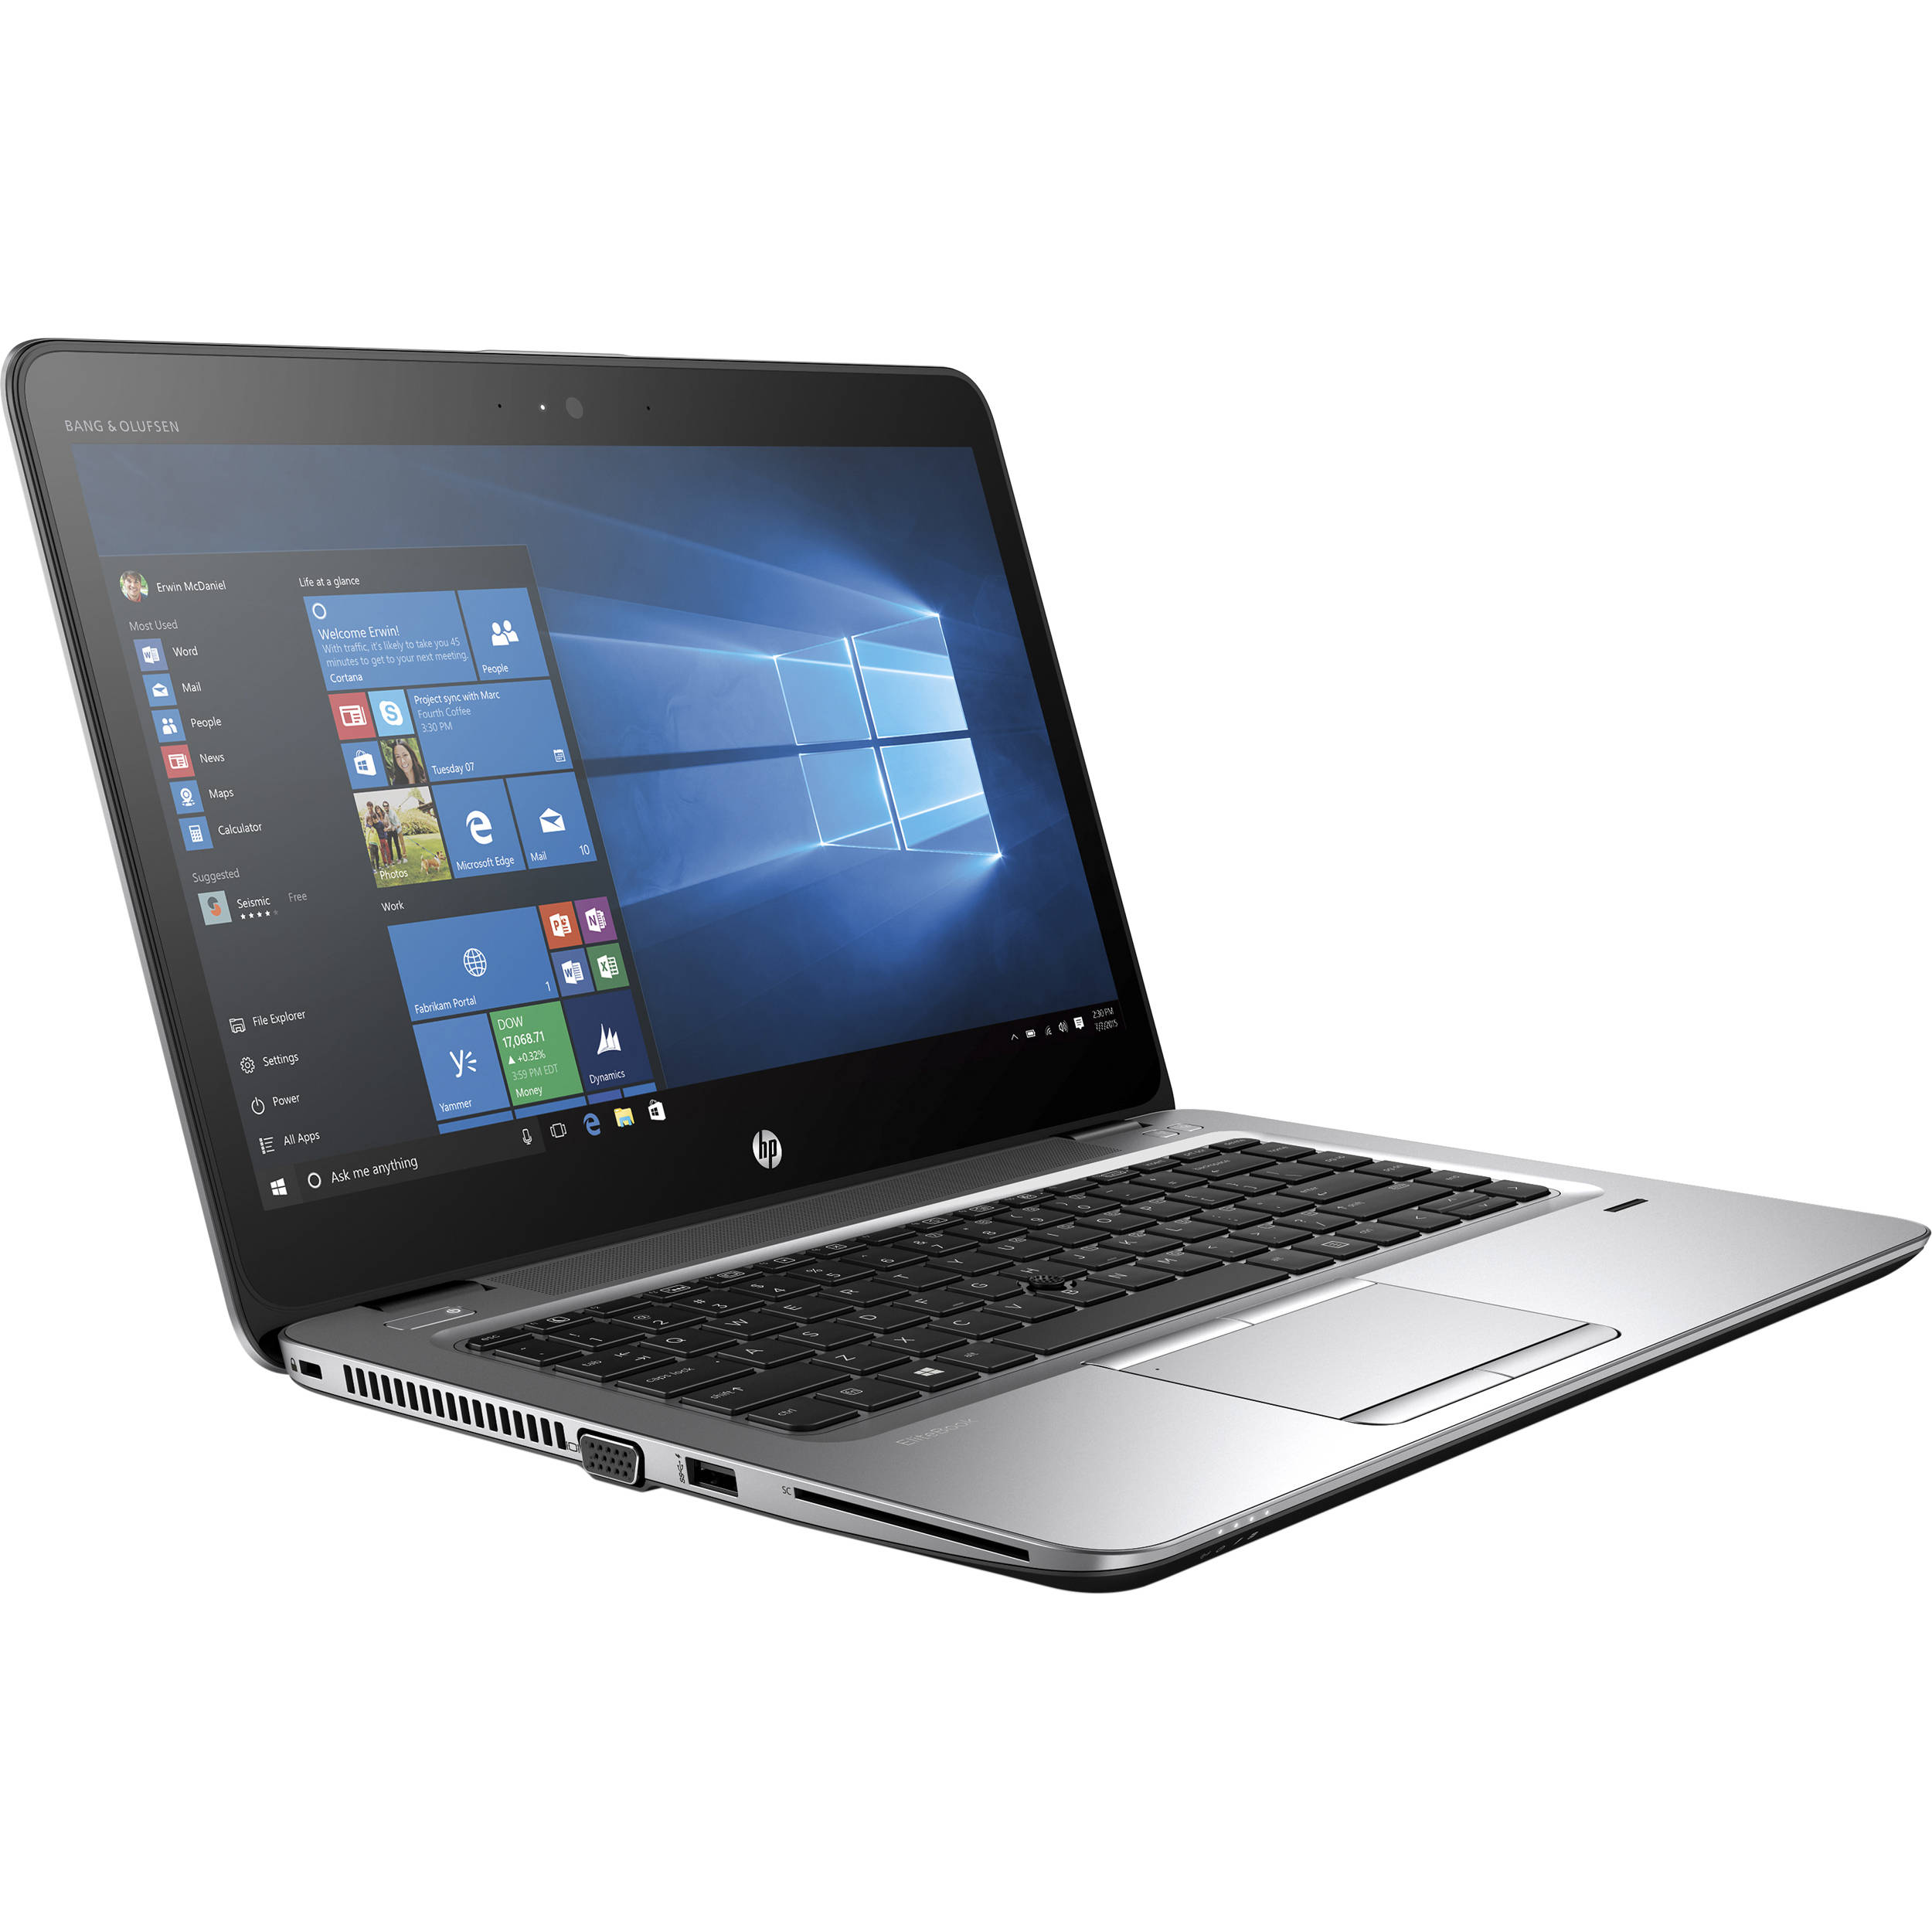 Laptop HP Elitebook 840 G3 Core i5 6300U/8GB/SSD 180GB